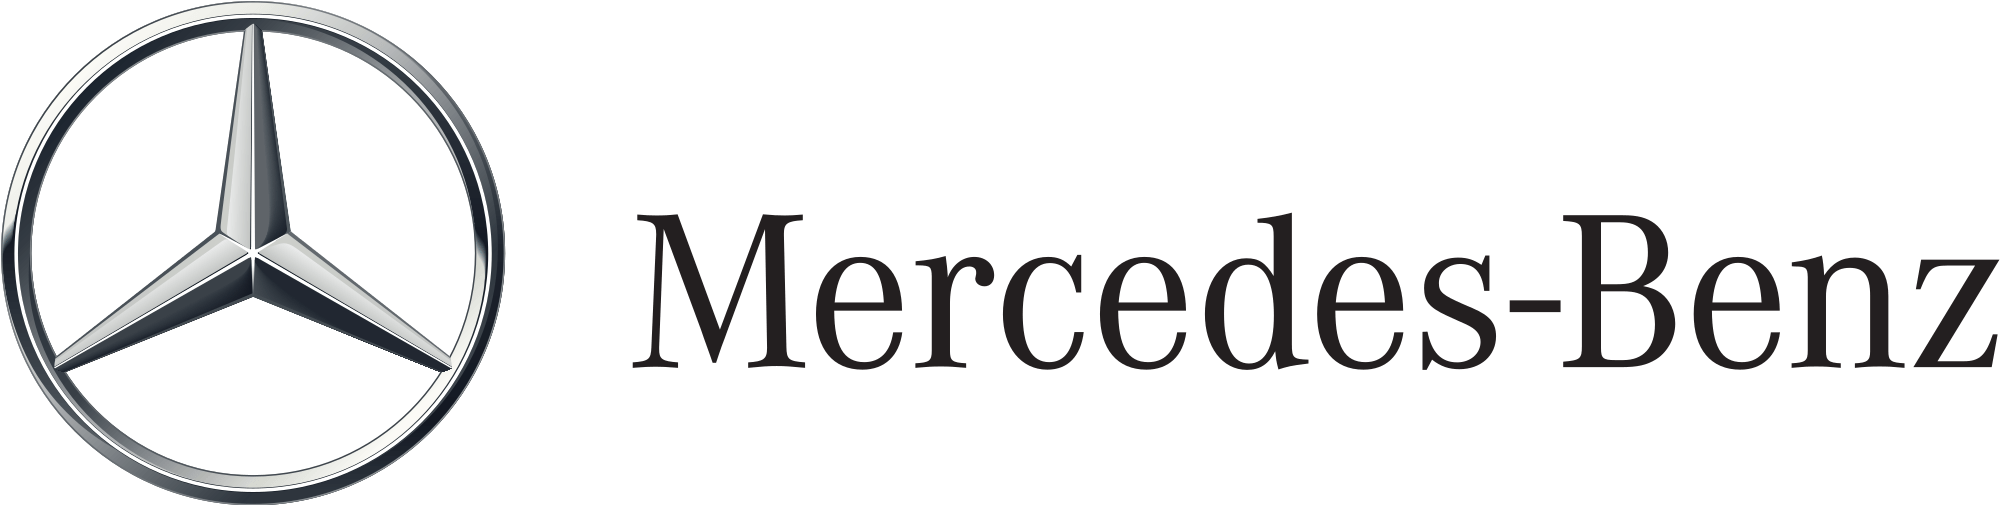 Mercedes-Benz Logo - File:Mercedes-Benz Logo 2010.svg - Wikimedia Commons